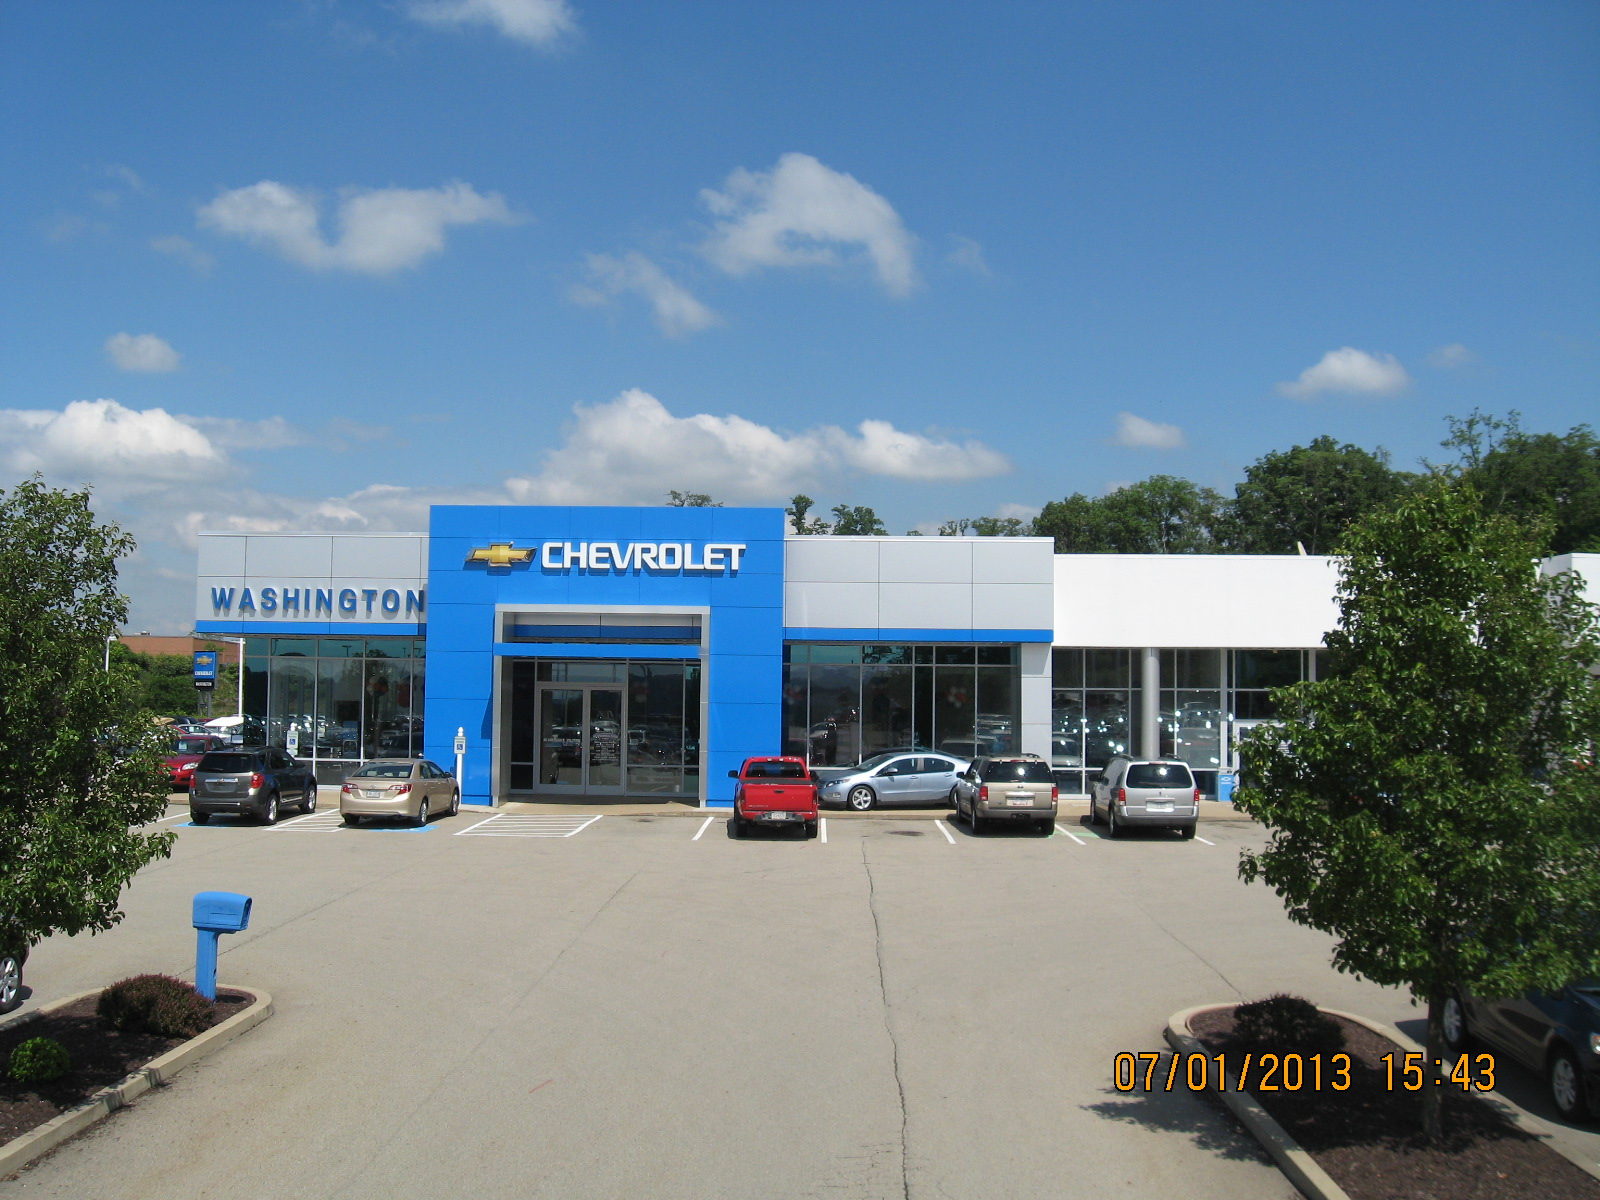 Washington Chevrolet, Washington PA